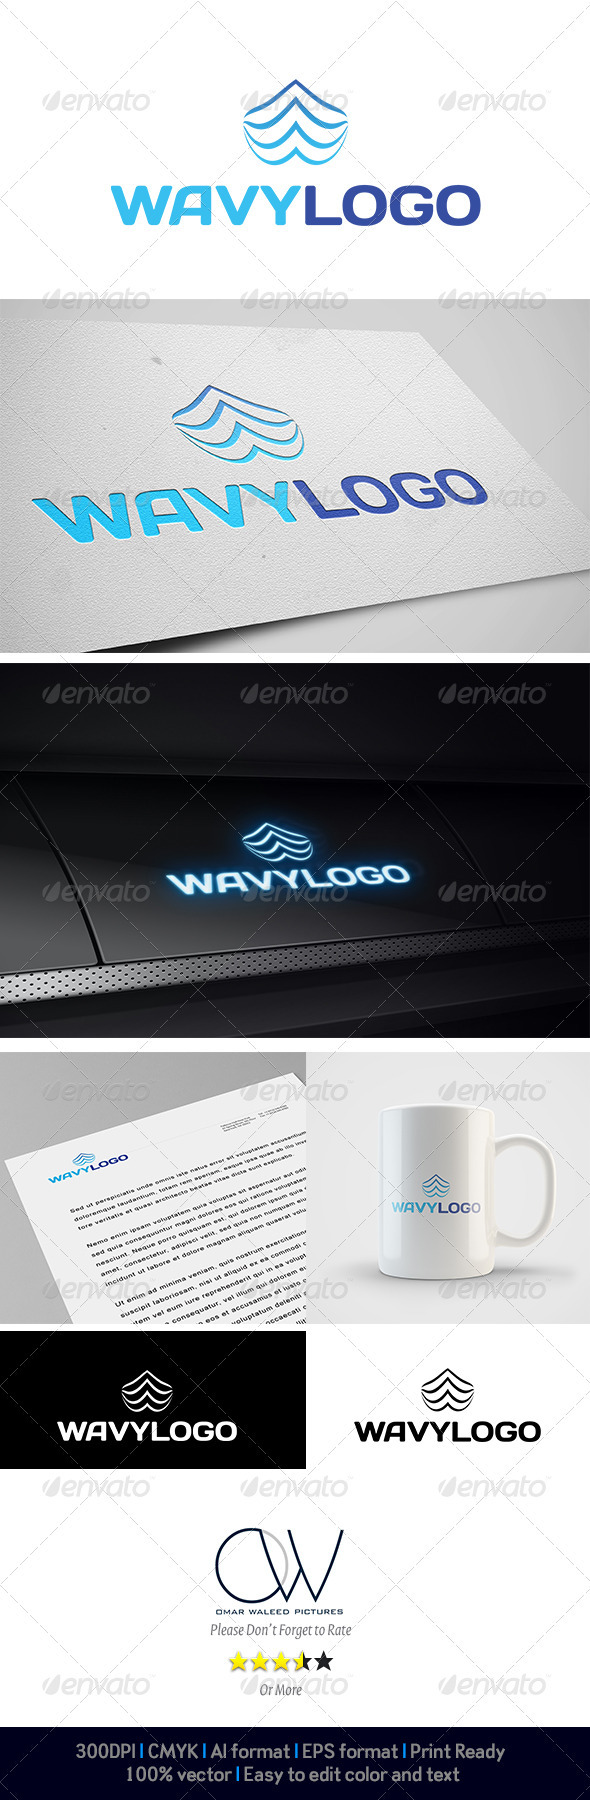 Wavy Logo - Abstract Logo Templates